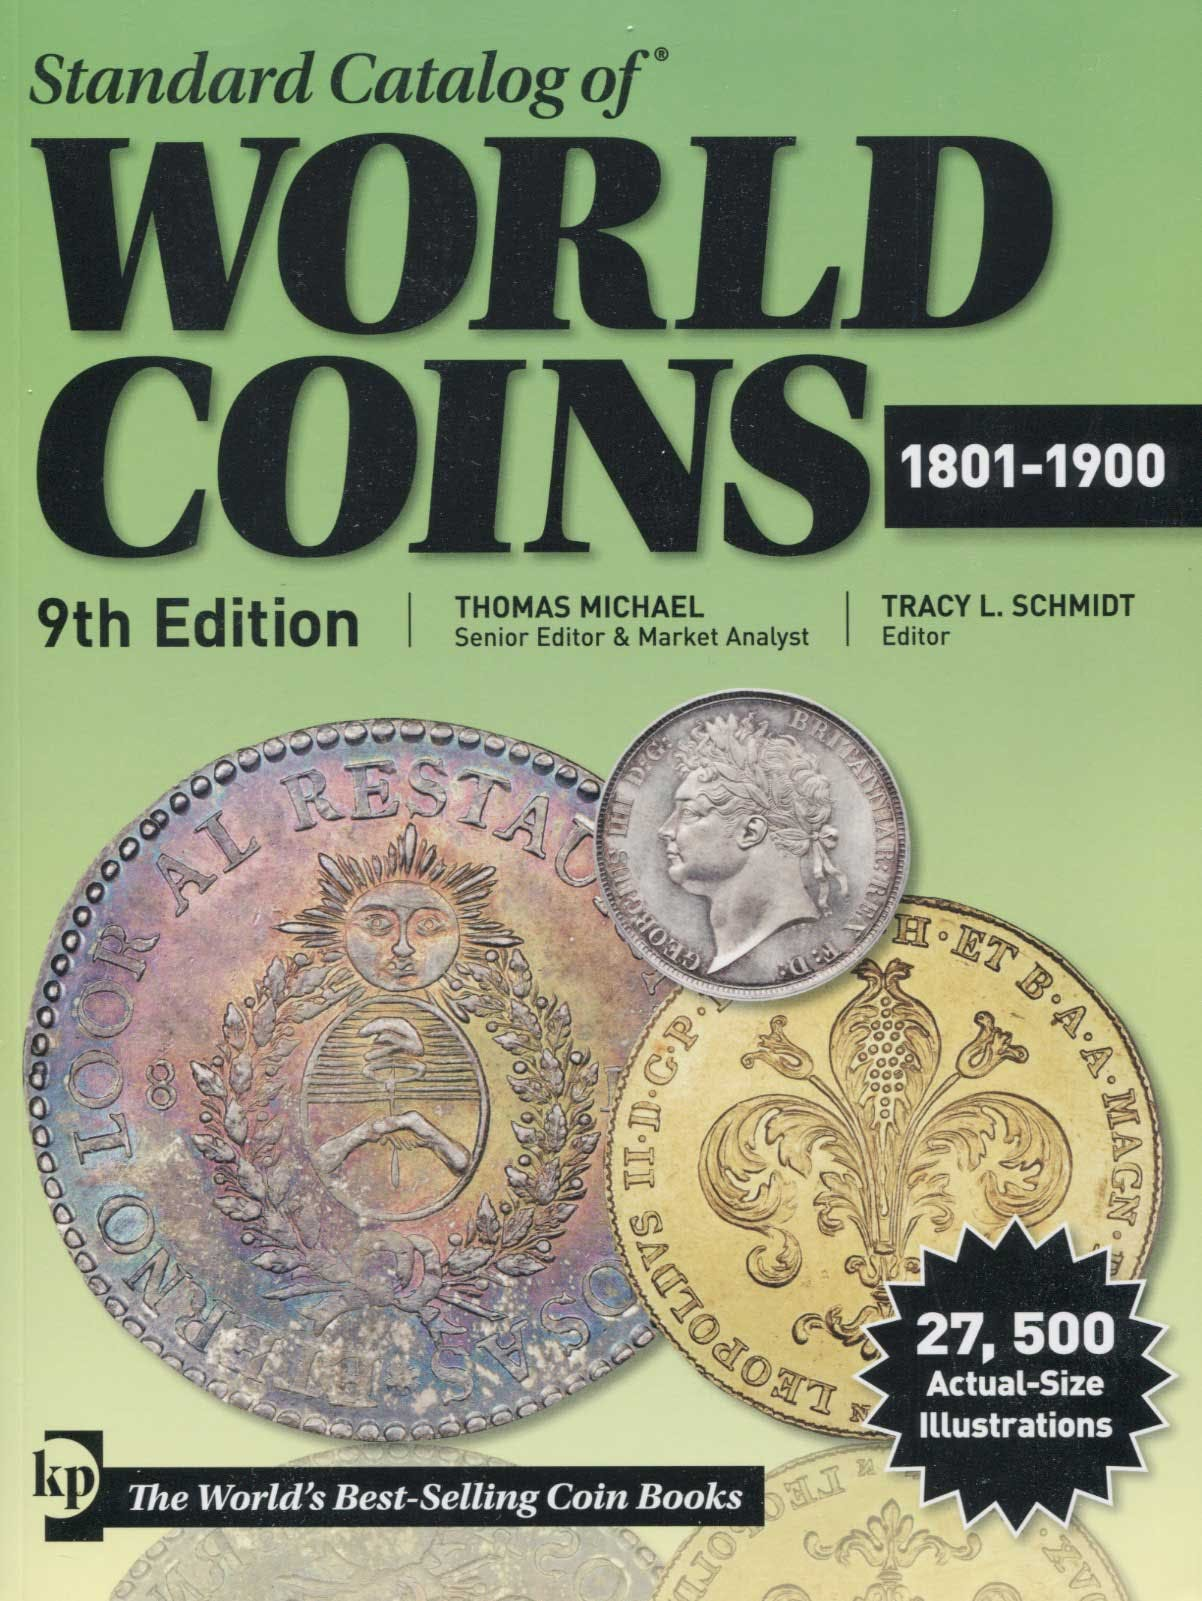 Krause World Coins 1801-1900 9th Edition - Token Publishing Shop